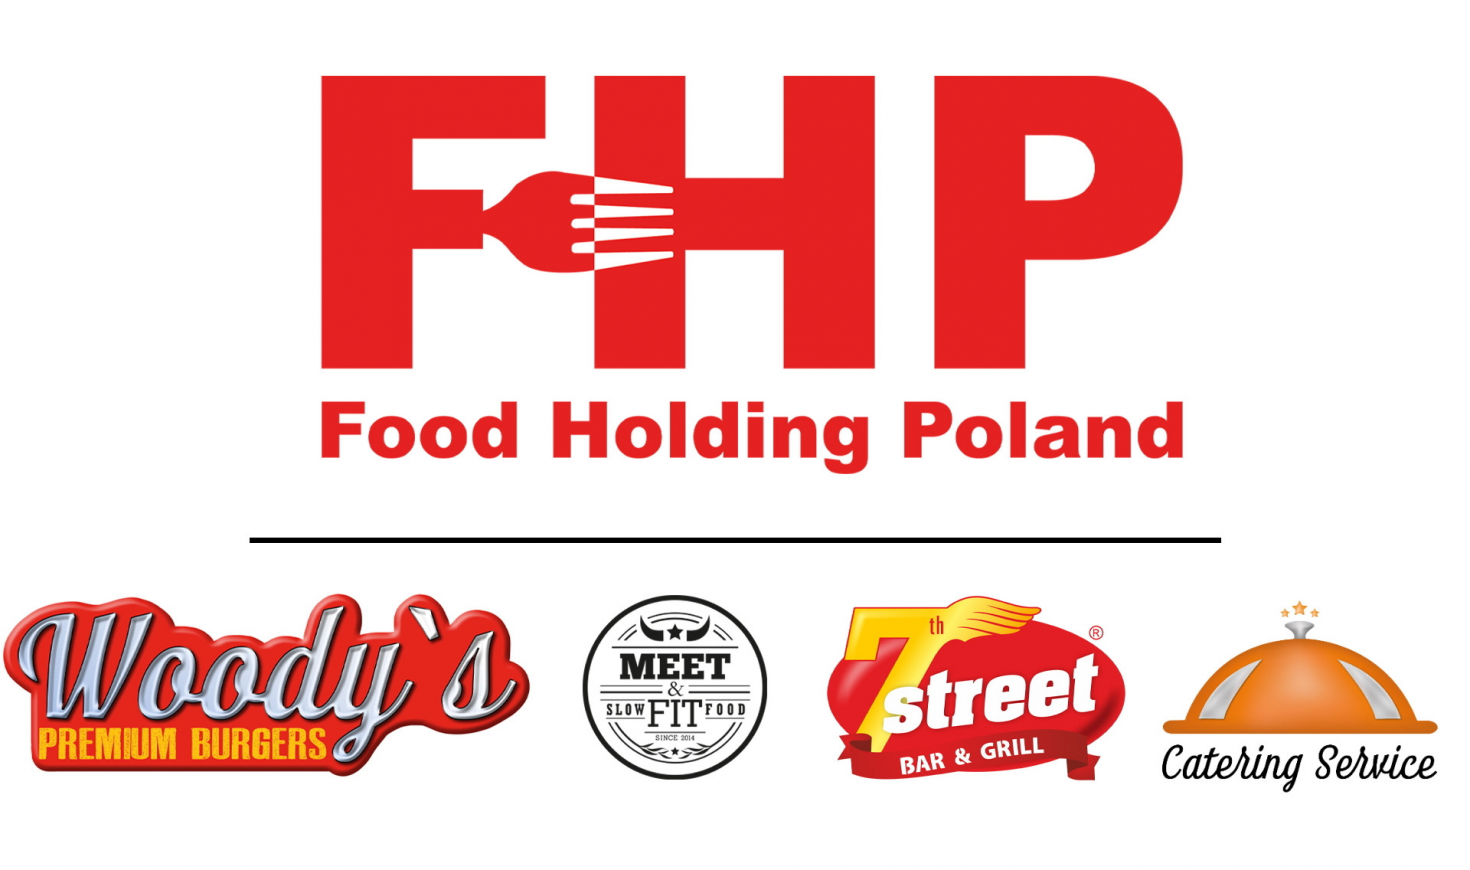 Food Holding Poland logo